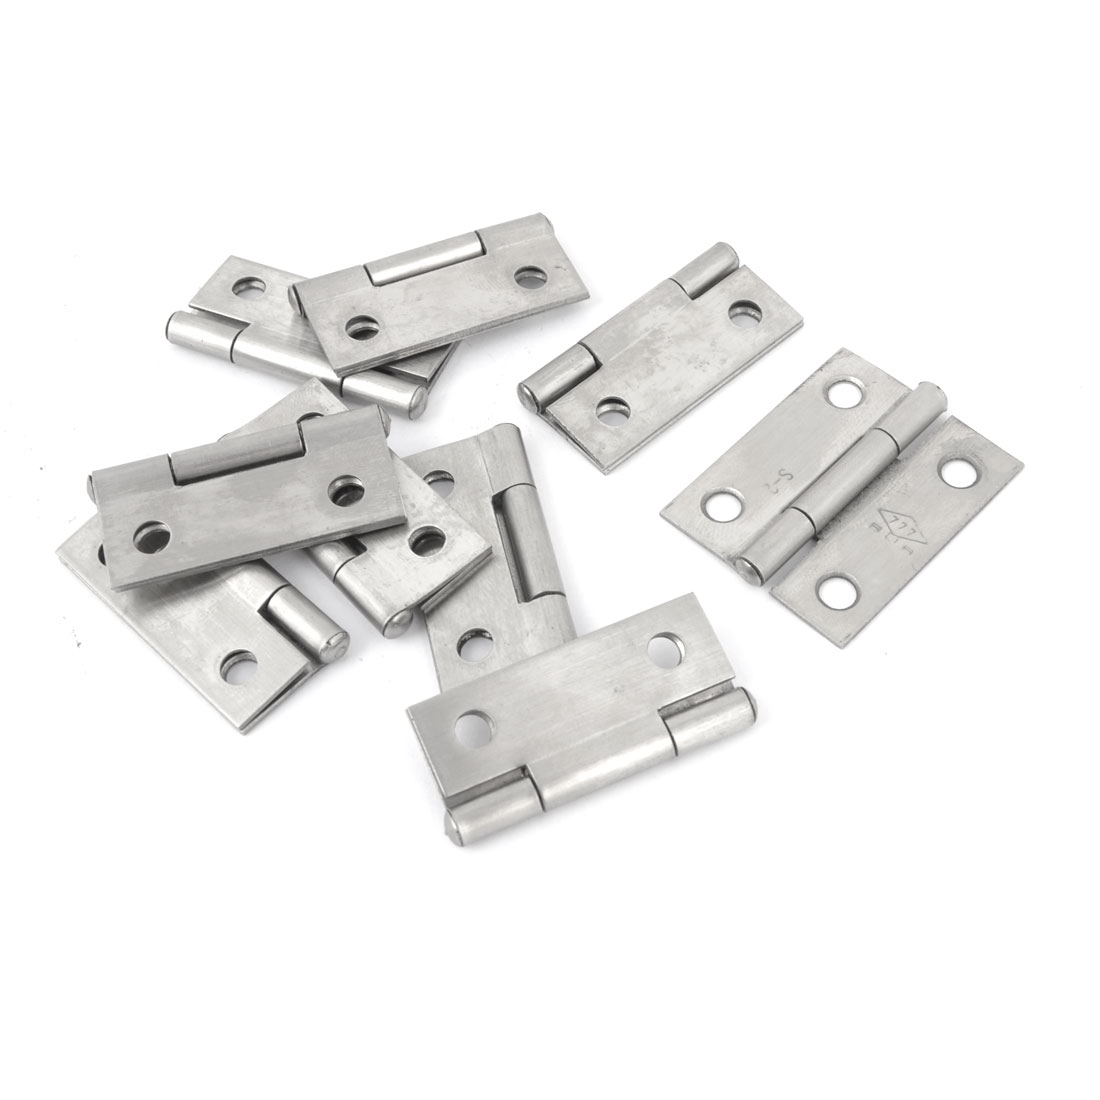 "10 Pcs Home Office Cupboard Cabinet Silver Tone Stainless Steel Foldable Rotating Cabinet Door Hinge 1.5"" Length"